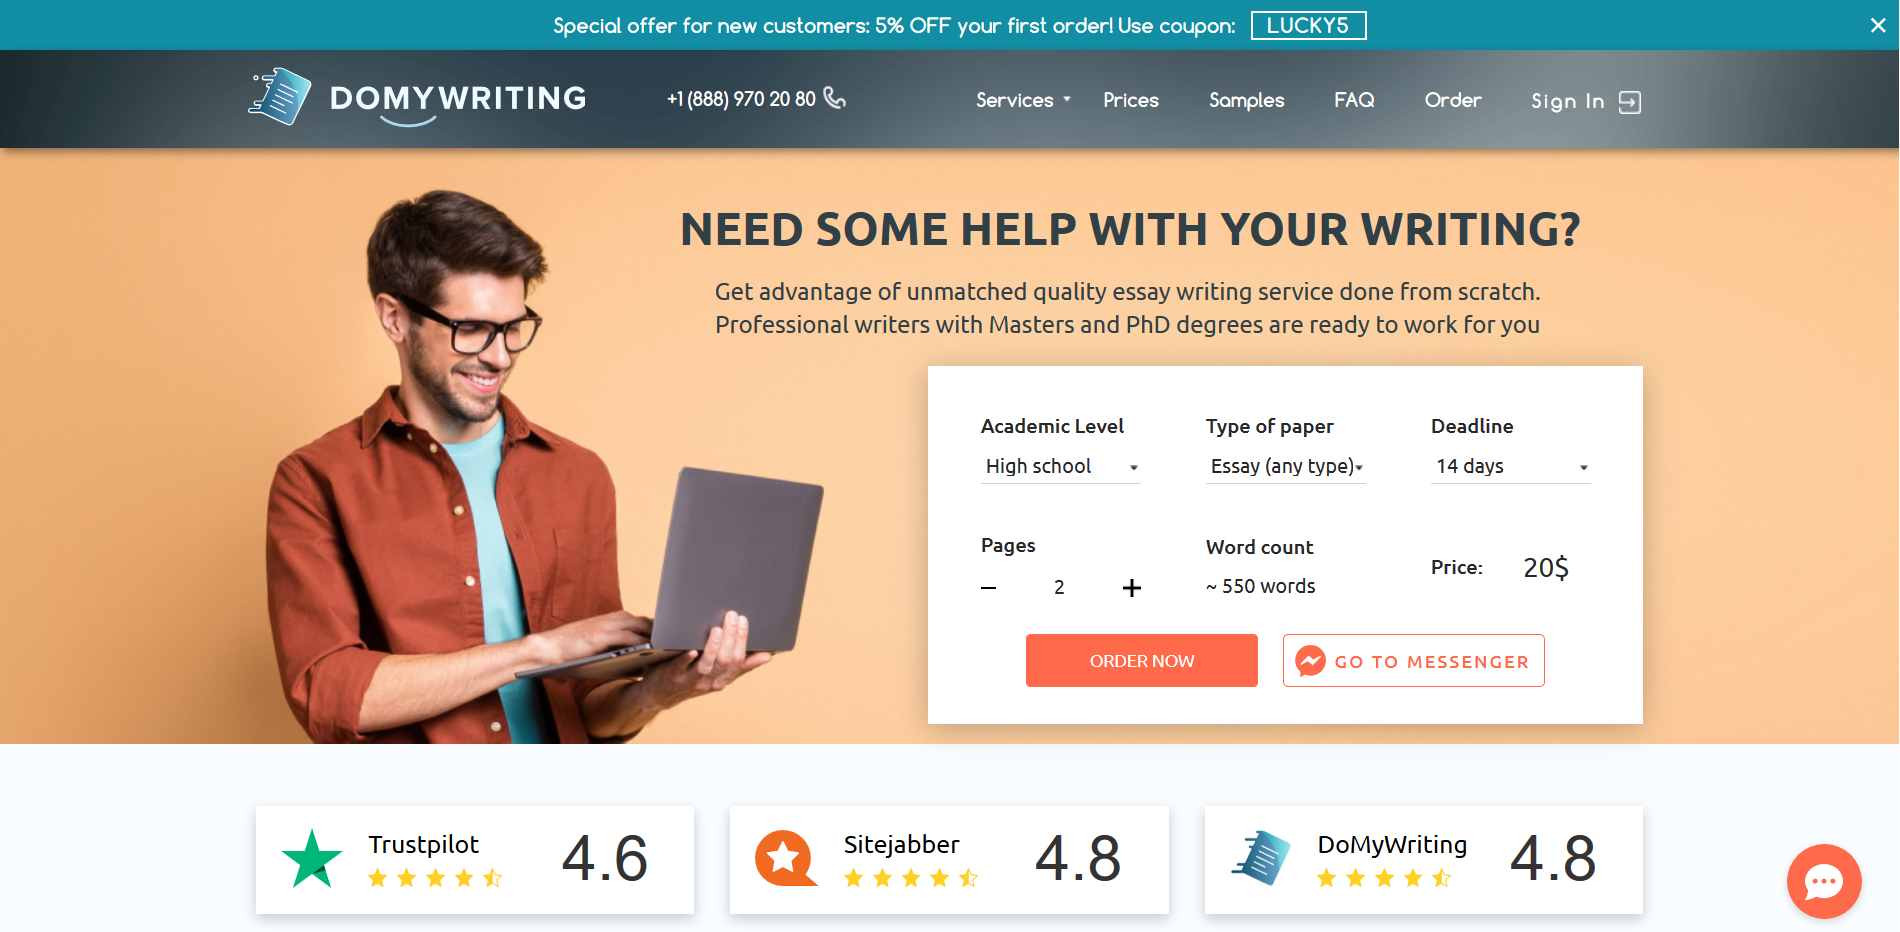 domywriting.com overview